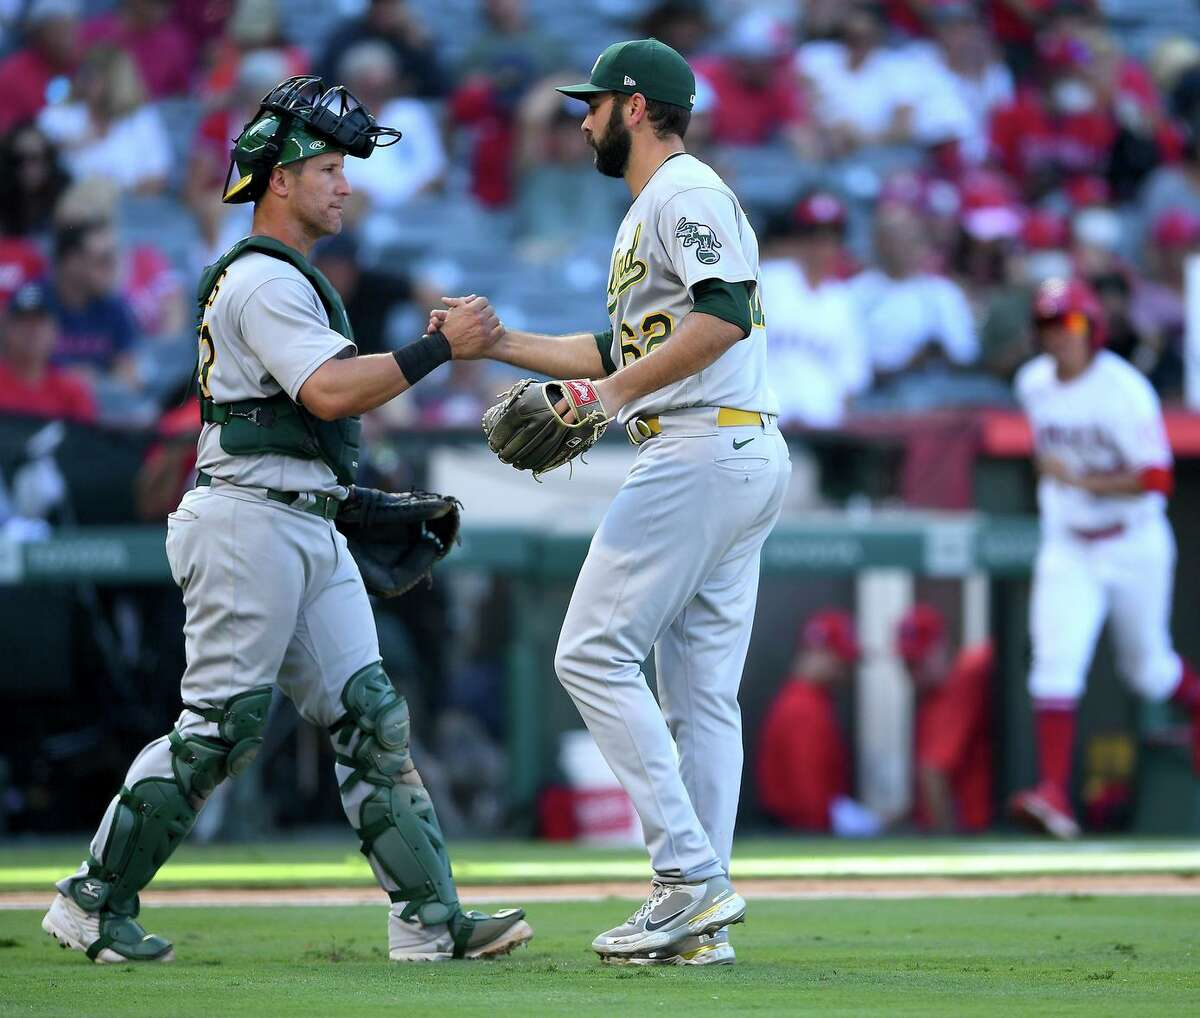 Catcher Yan Gomes (left) celebrates with Lou Trivino, who entered the game in the bottom of the ninth inning before finishing it off in the 10th to be credited with the win.